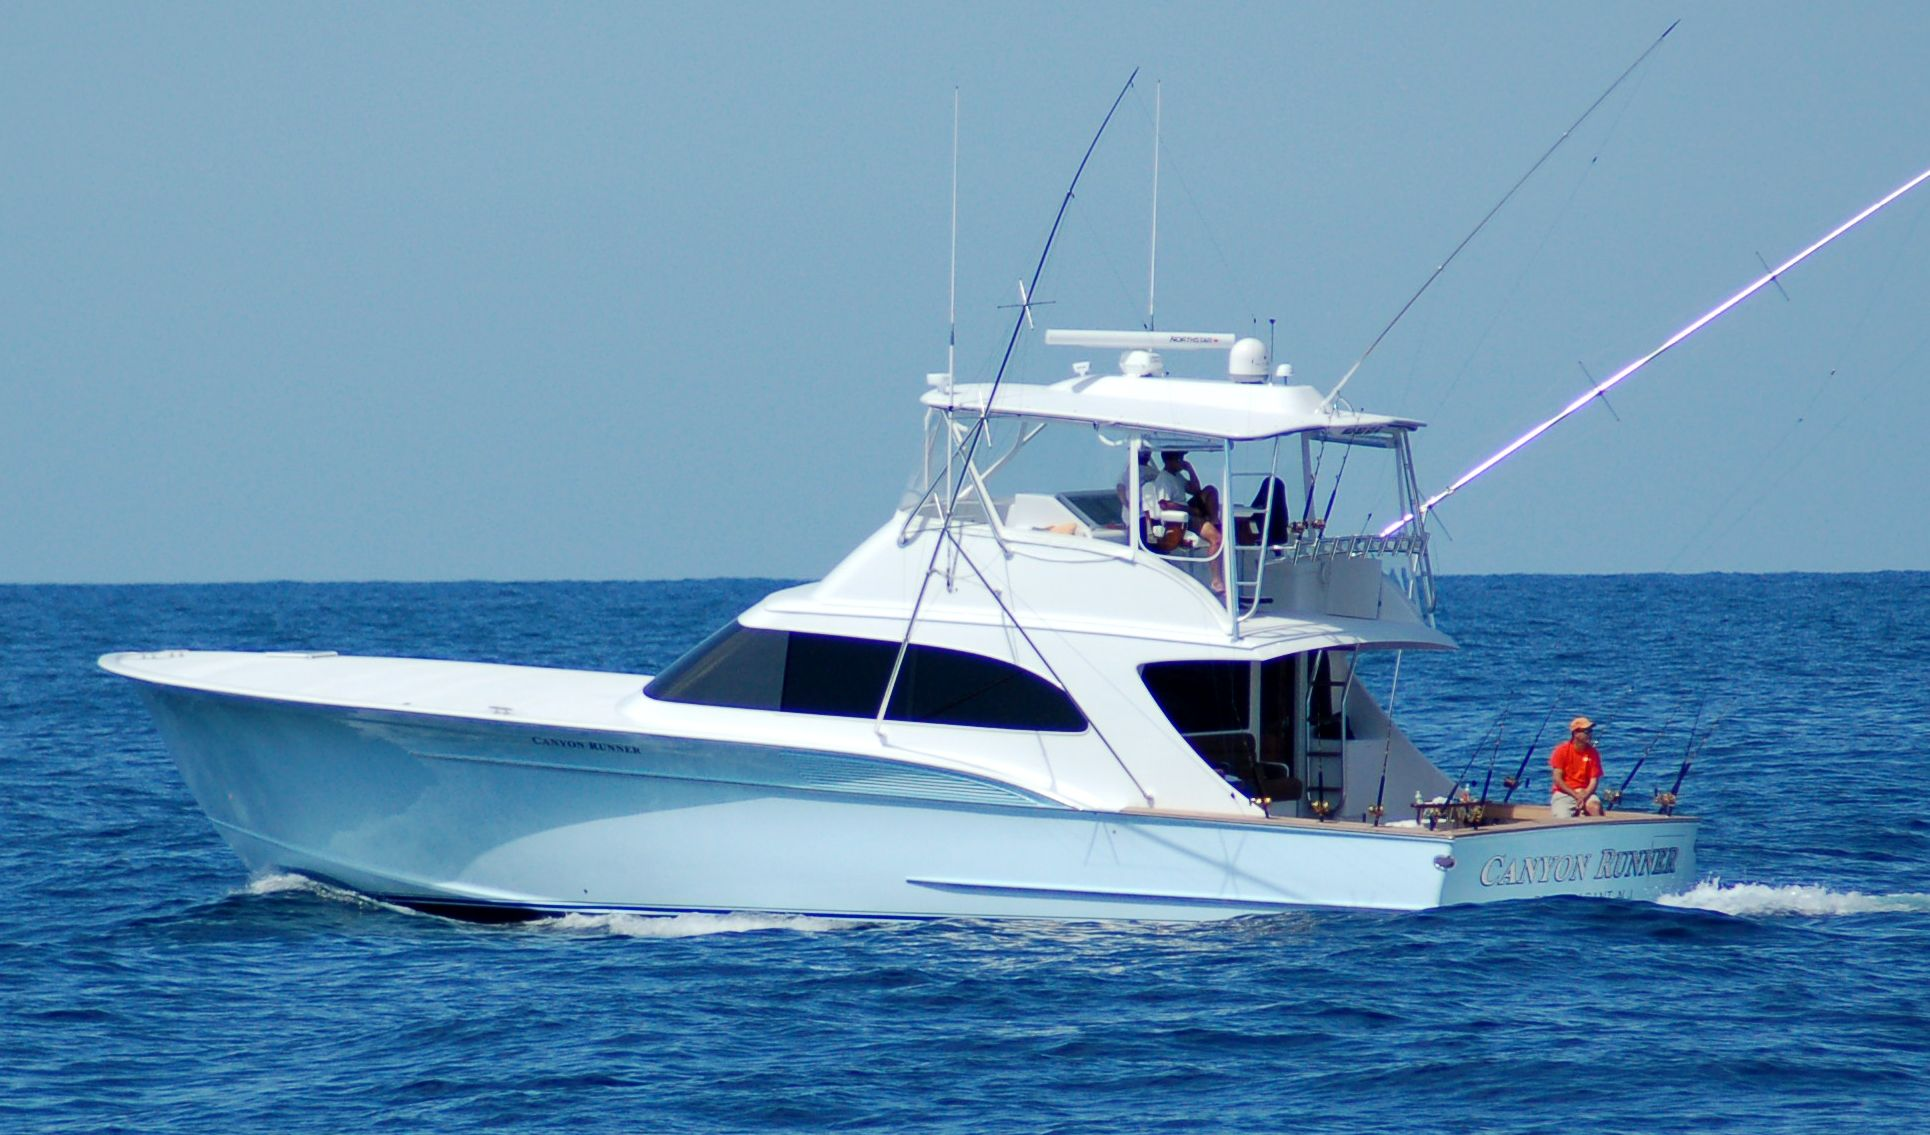 fishing in deeper water off the Florida shore. Sport